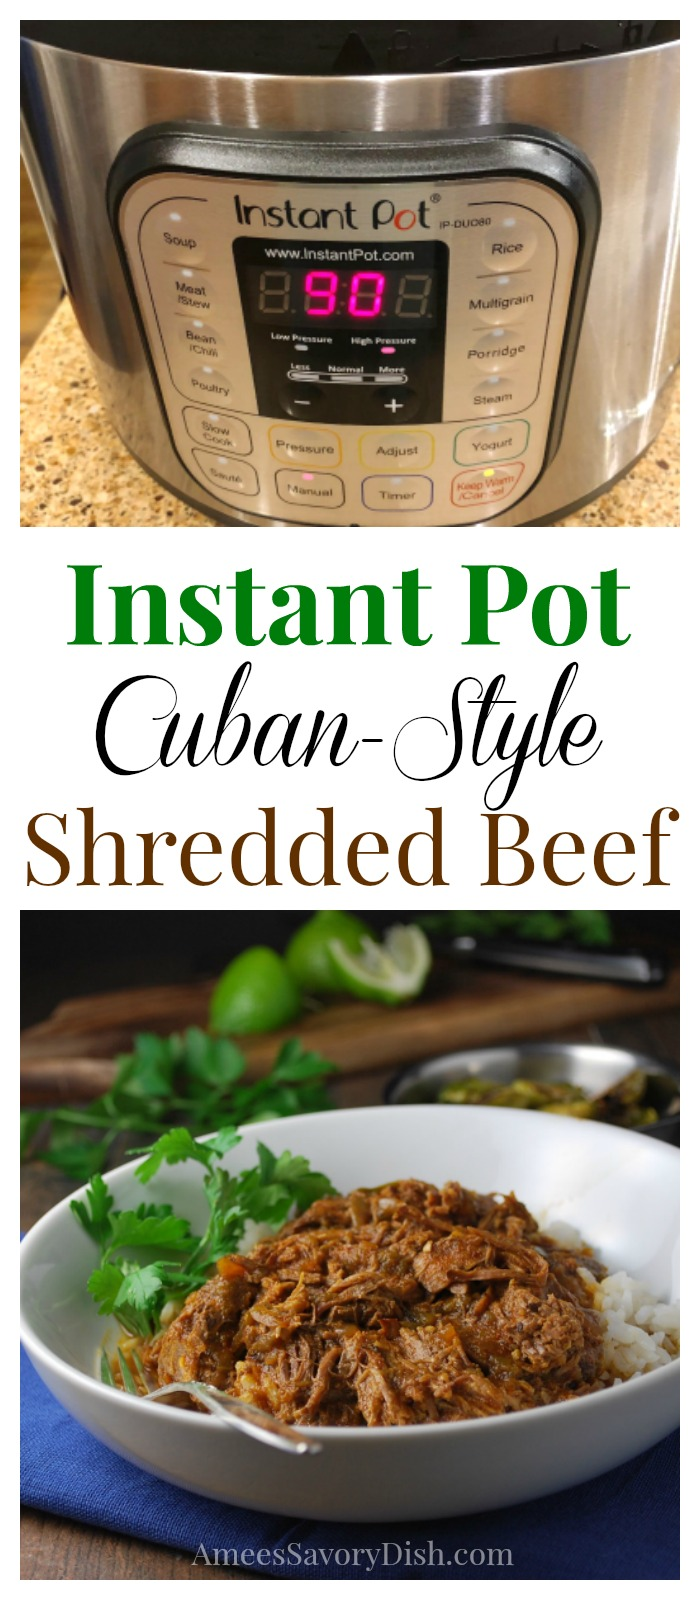 Instant Pot Cuban-Style Shredded Beef recipe